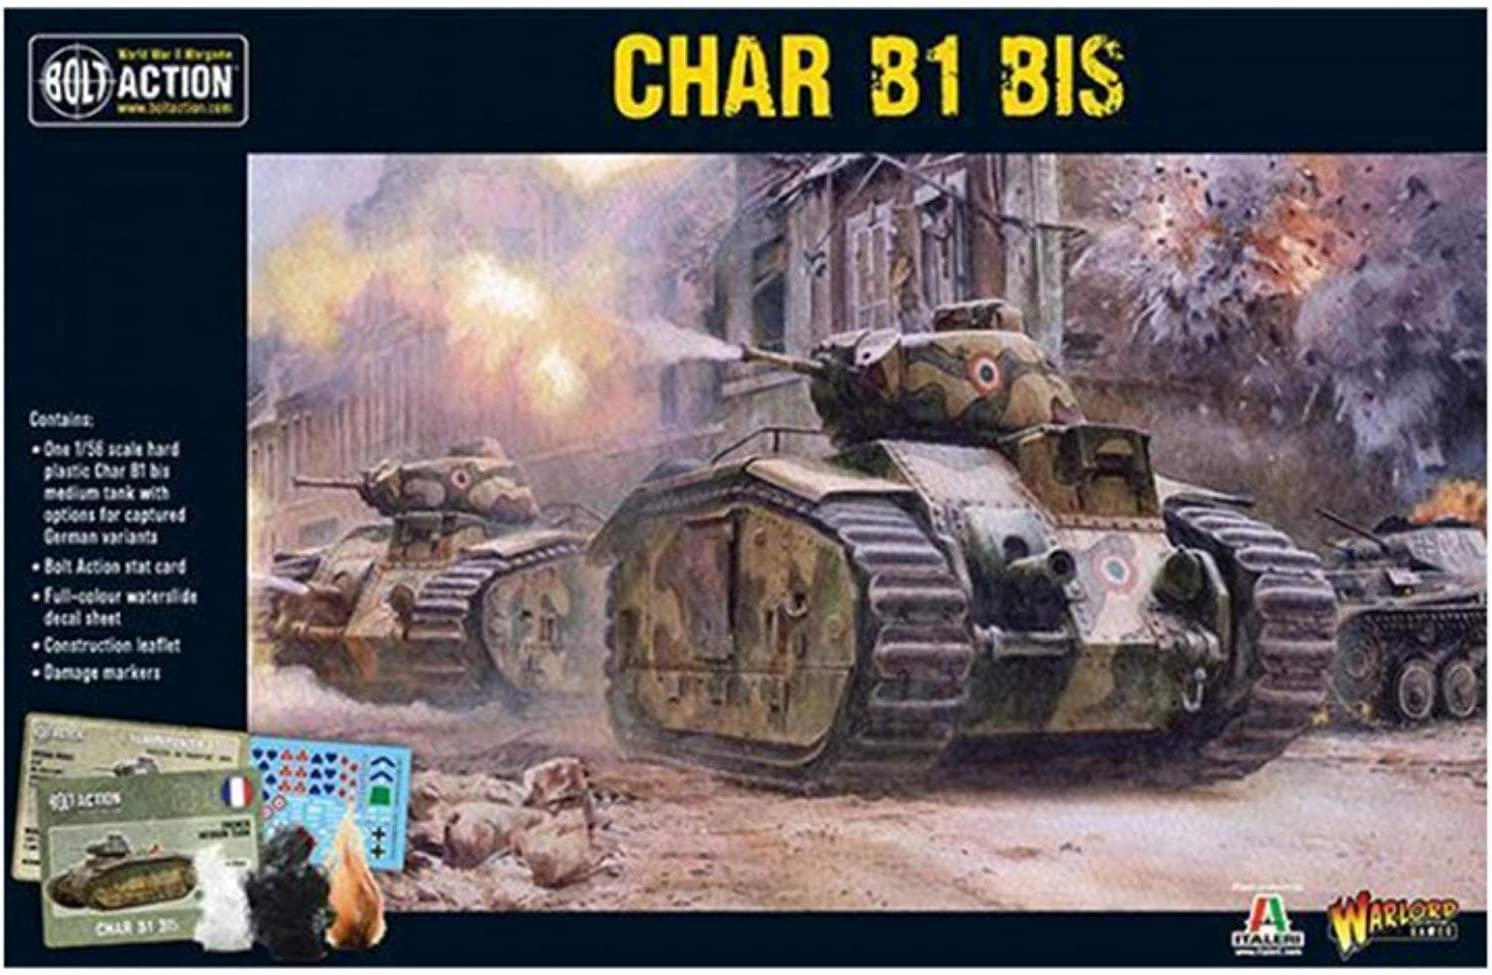 Bolt Action Char B1 Bis Tank 1:56 WWII Military Wargaming Plastic Model Kit